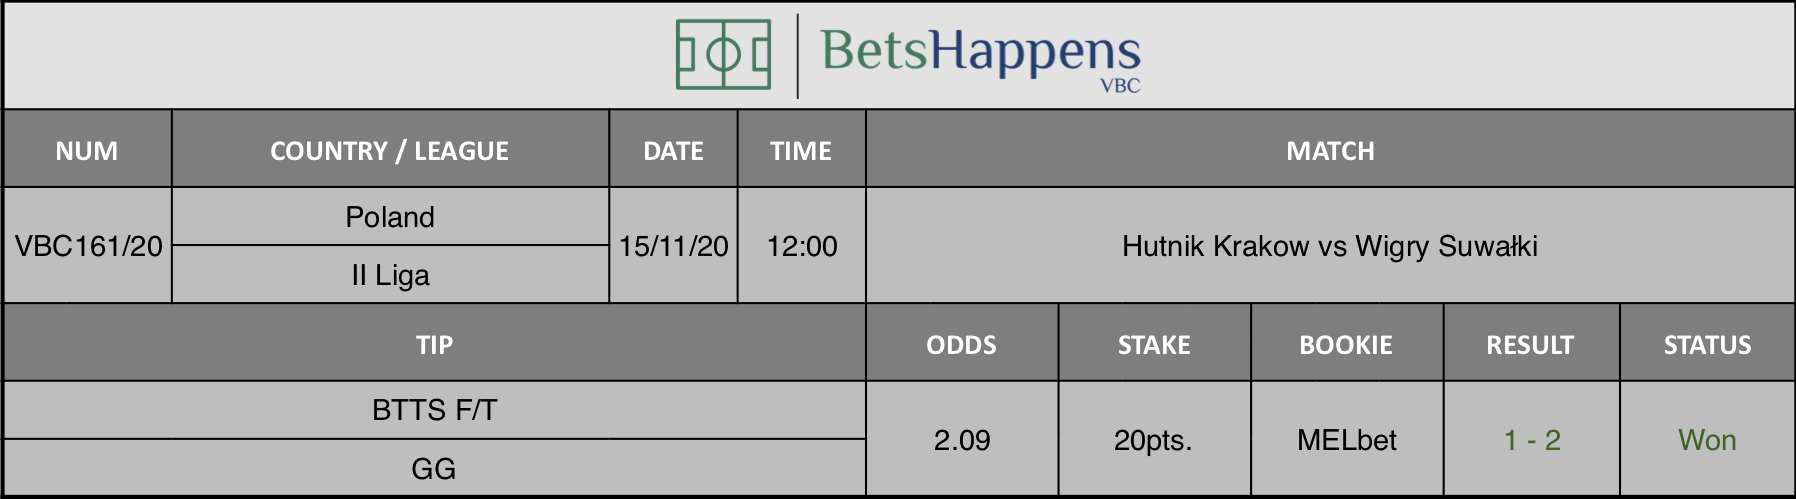 Results of our tip for the Hutnik Krakow vs Wigry Suwałki match where BTTS F/T  GG is recommended.